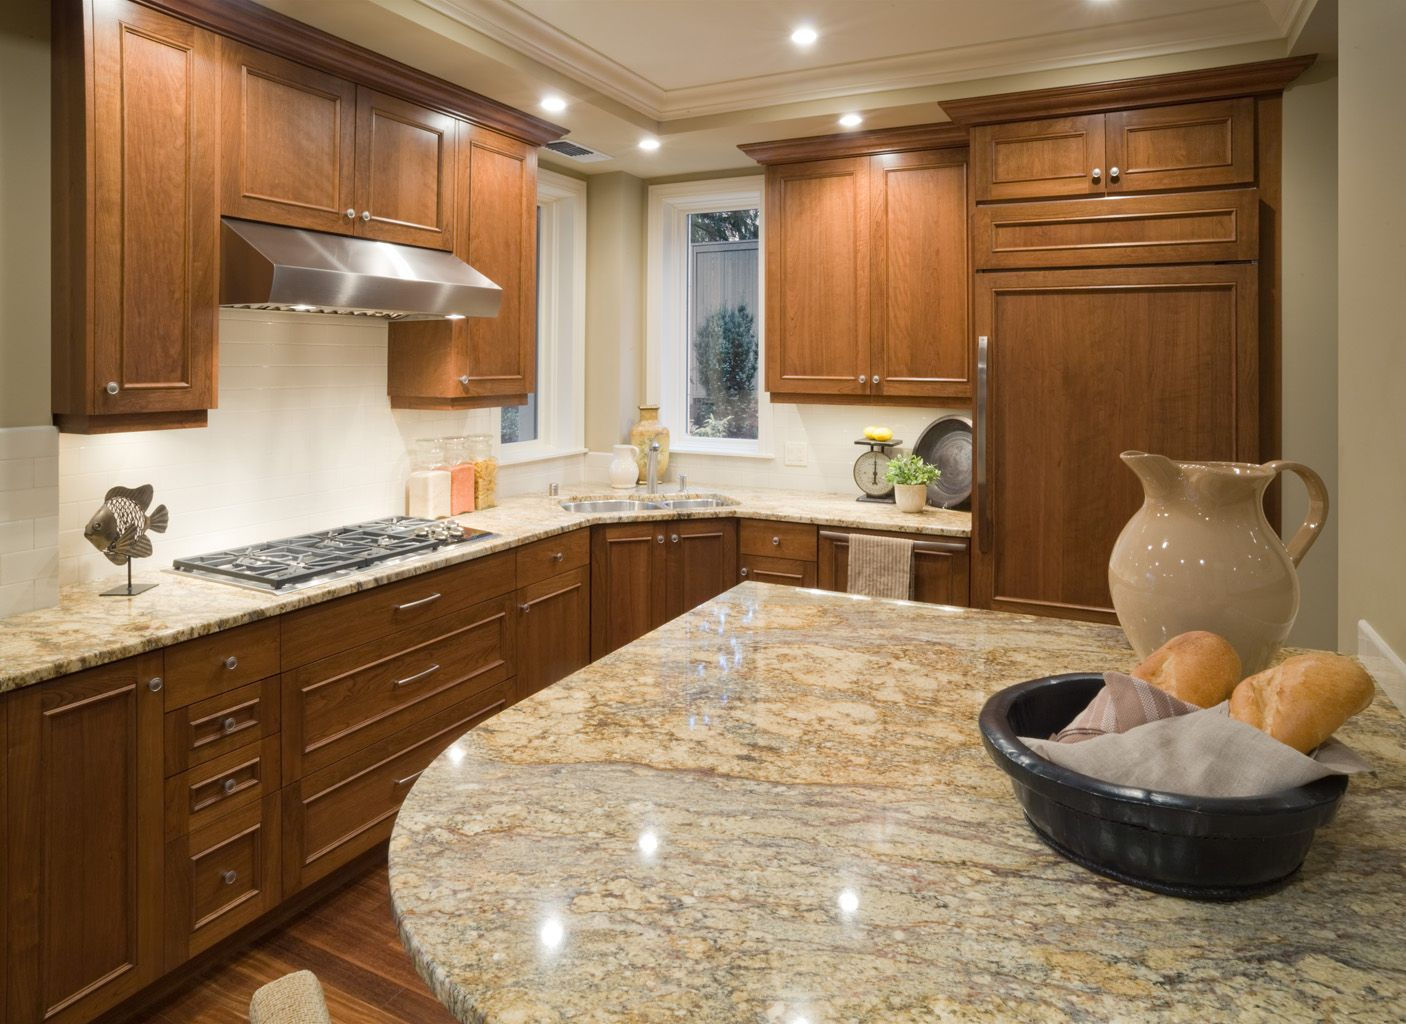 Bianco Romano Granite Kitchen Granite Backsplash Slab Bianco Romano Granite Gallant Gold